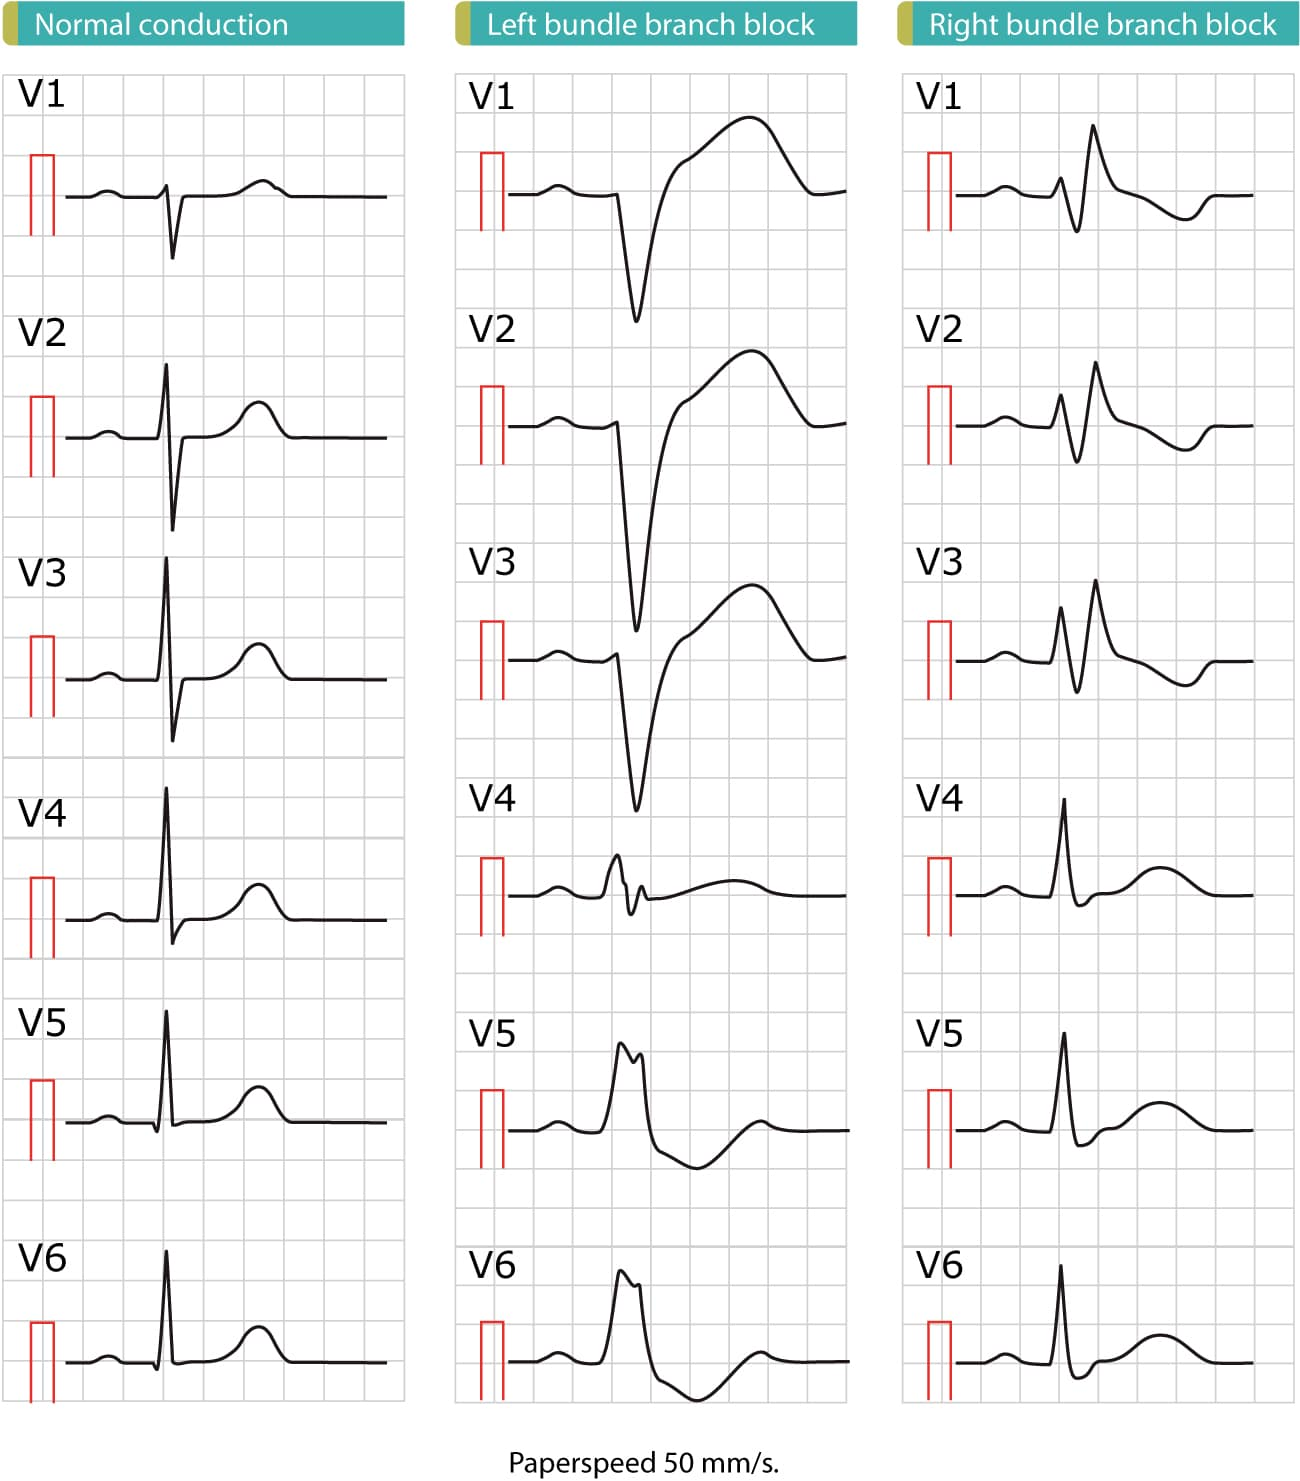 Figure 1. These ECGs show the difference between normal conduction, left bundle branch block (LBBB) and right bundle branch block (RBBB). As evident from these ECGs, the cardinal difference between normal conduction and bundle branch blocks is the QRS duration: bundle branch blocks are caused by dysfunctional bundle branches, which results in slow (and abnormal) activation of ventricular myocardium and thus prolonged QRS duration. A QRS duration of 120 ms (0.12 s) is required to diagnose bundle branch block. Also note that both left bundle branch block (LBBB) and right bundle branch block (RBBB) cause marked ST-T changes, including ST elevations, ST depressions and inverted (negative) T-waves. These ST-T changes are due to abnormal repolarization and they are expected to occur in both LBBB and RBBB. Finally, note that there are marked difference in the ECG pattern between LBBB and RBBB. These ECGs are printed at paperspeed 50 mm/s.